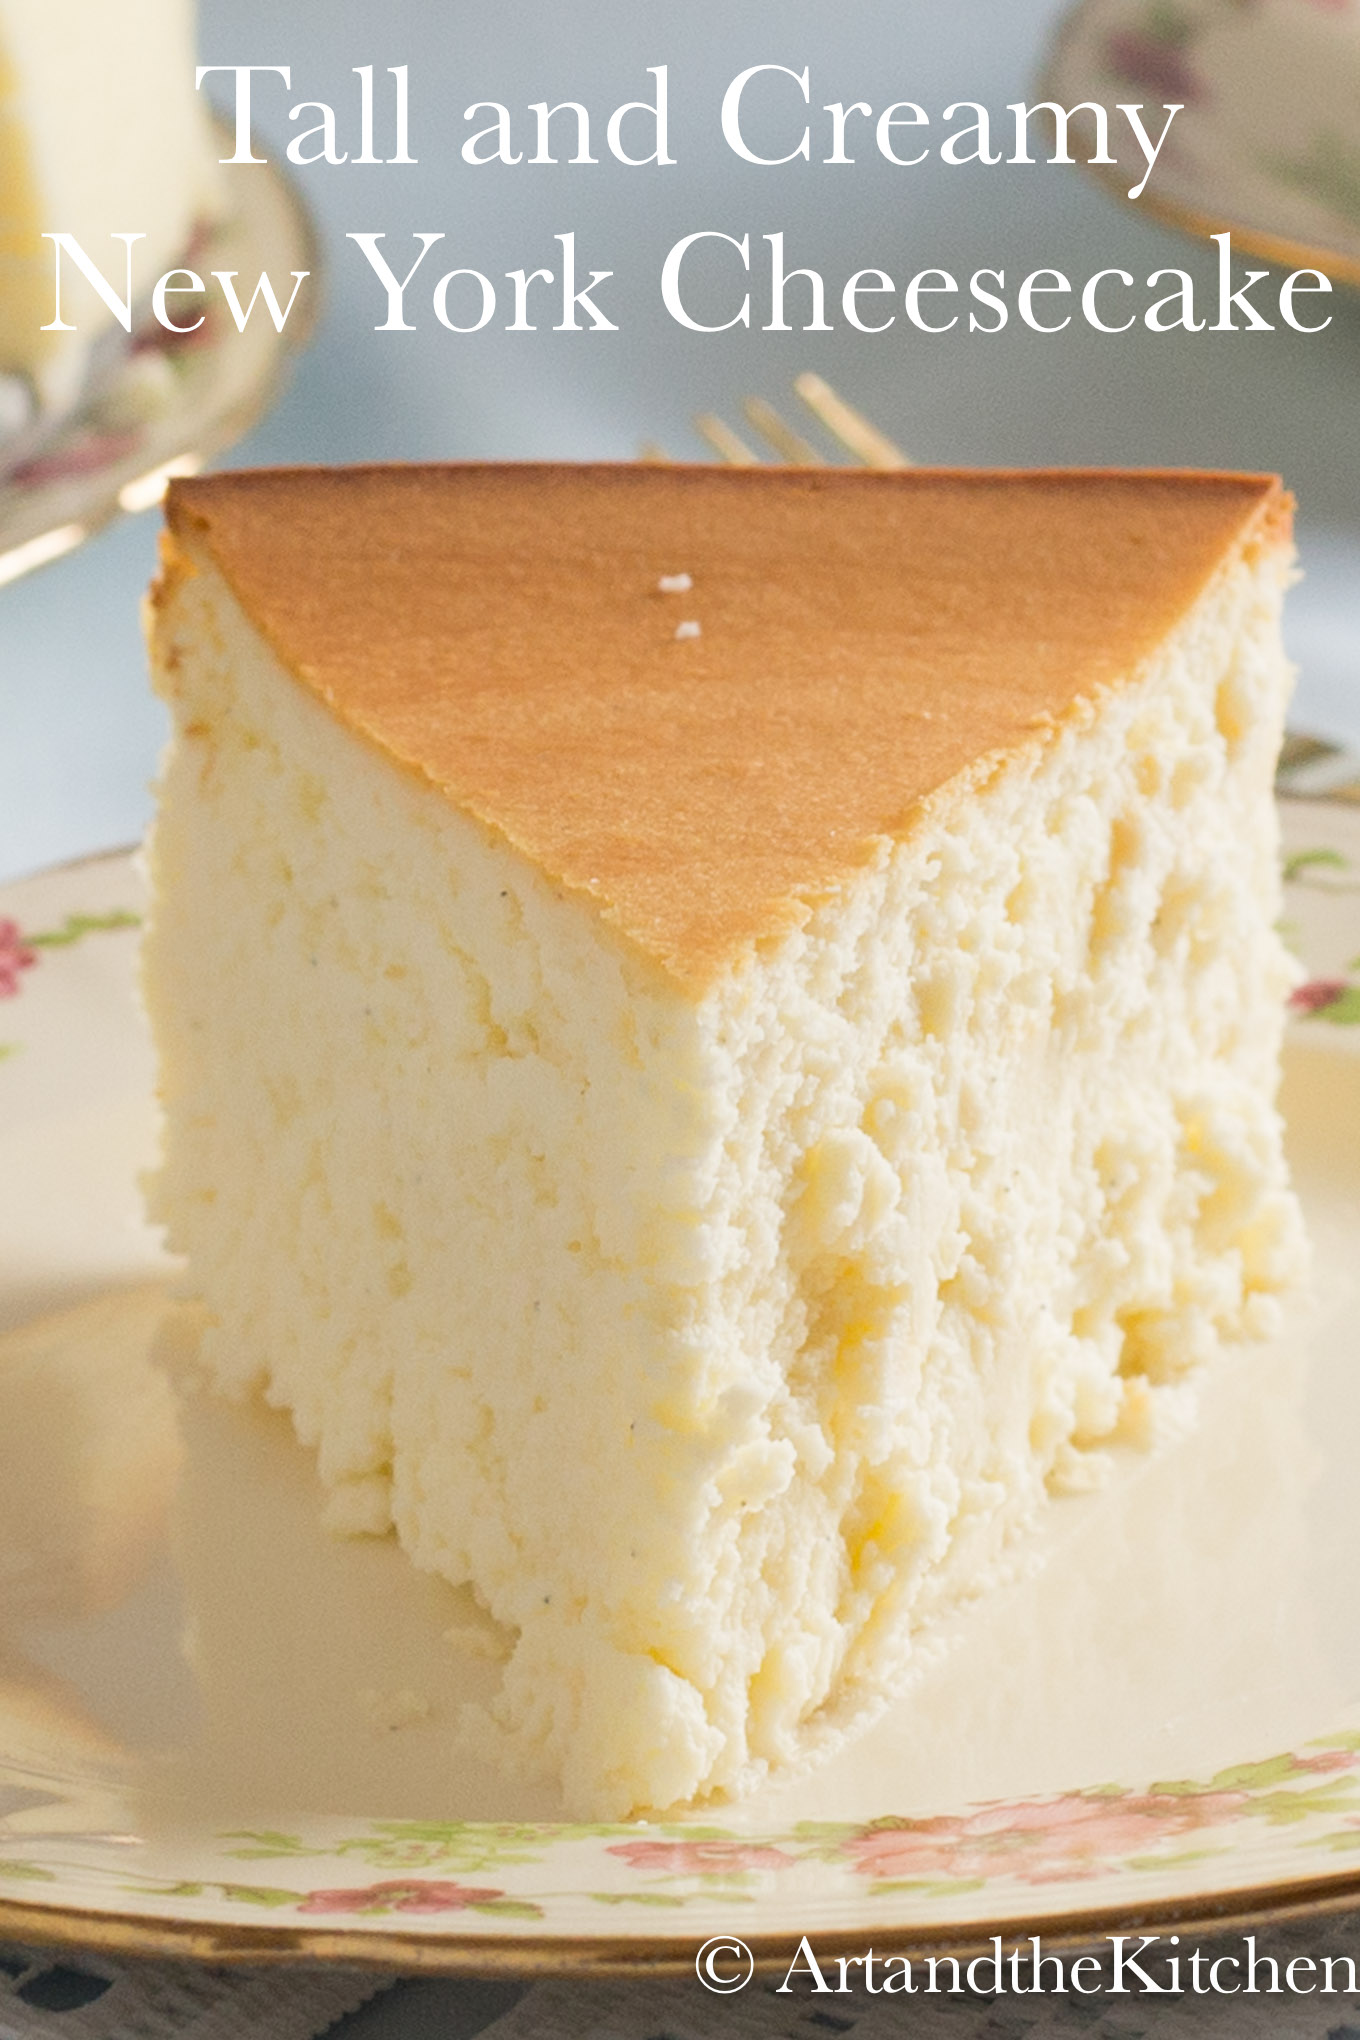 Tall and Creamy New York Cheesecake is an exceptional cheesecake recipe. The best cheesecake I've ever had!  via @artandthekitch